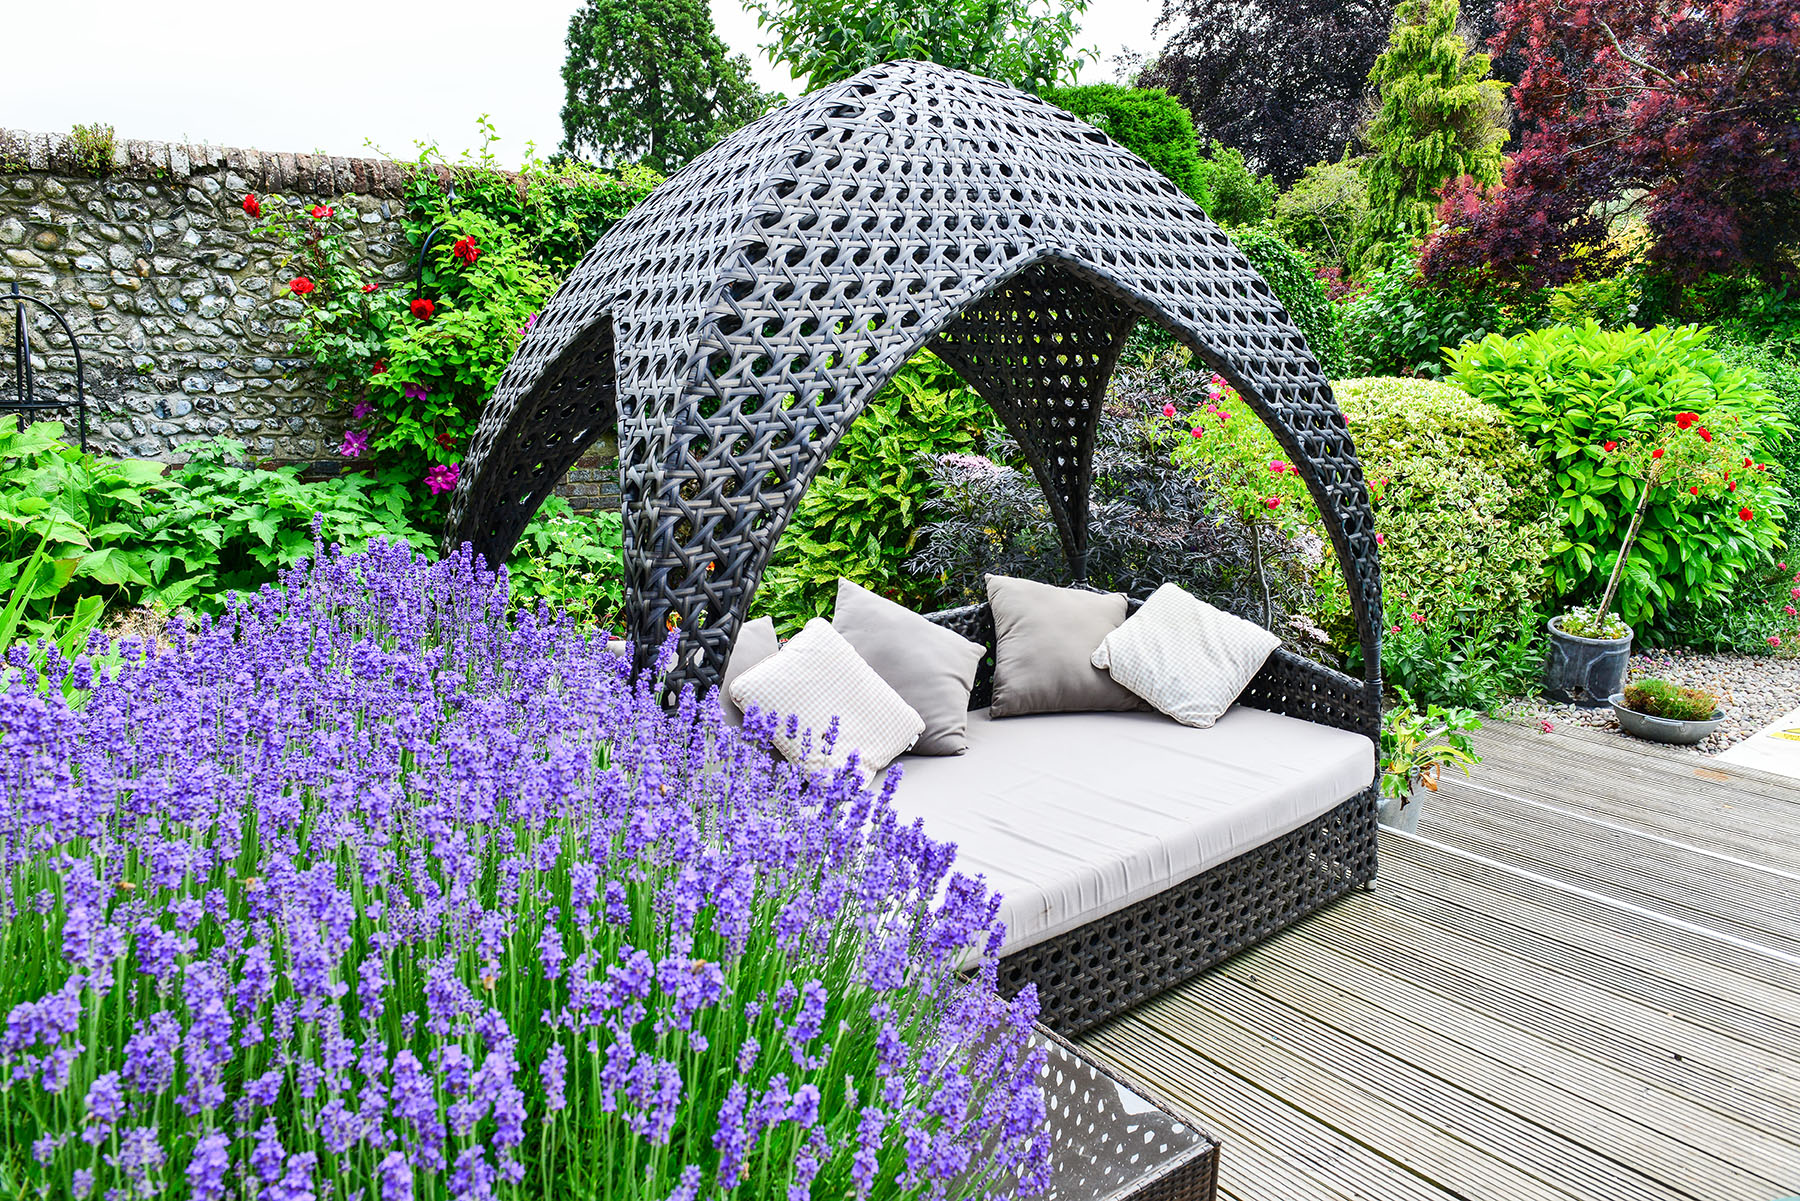 Springwells-garden seating pod by pool